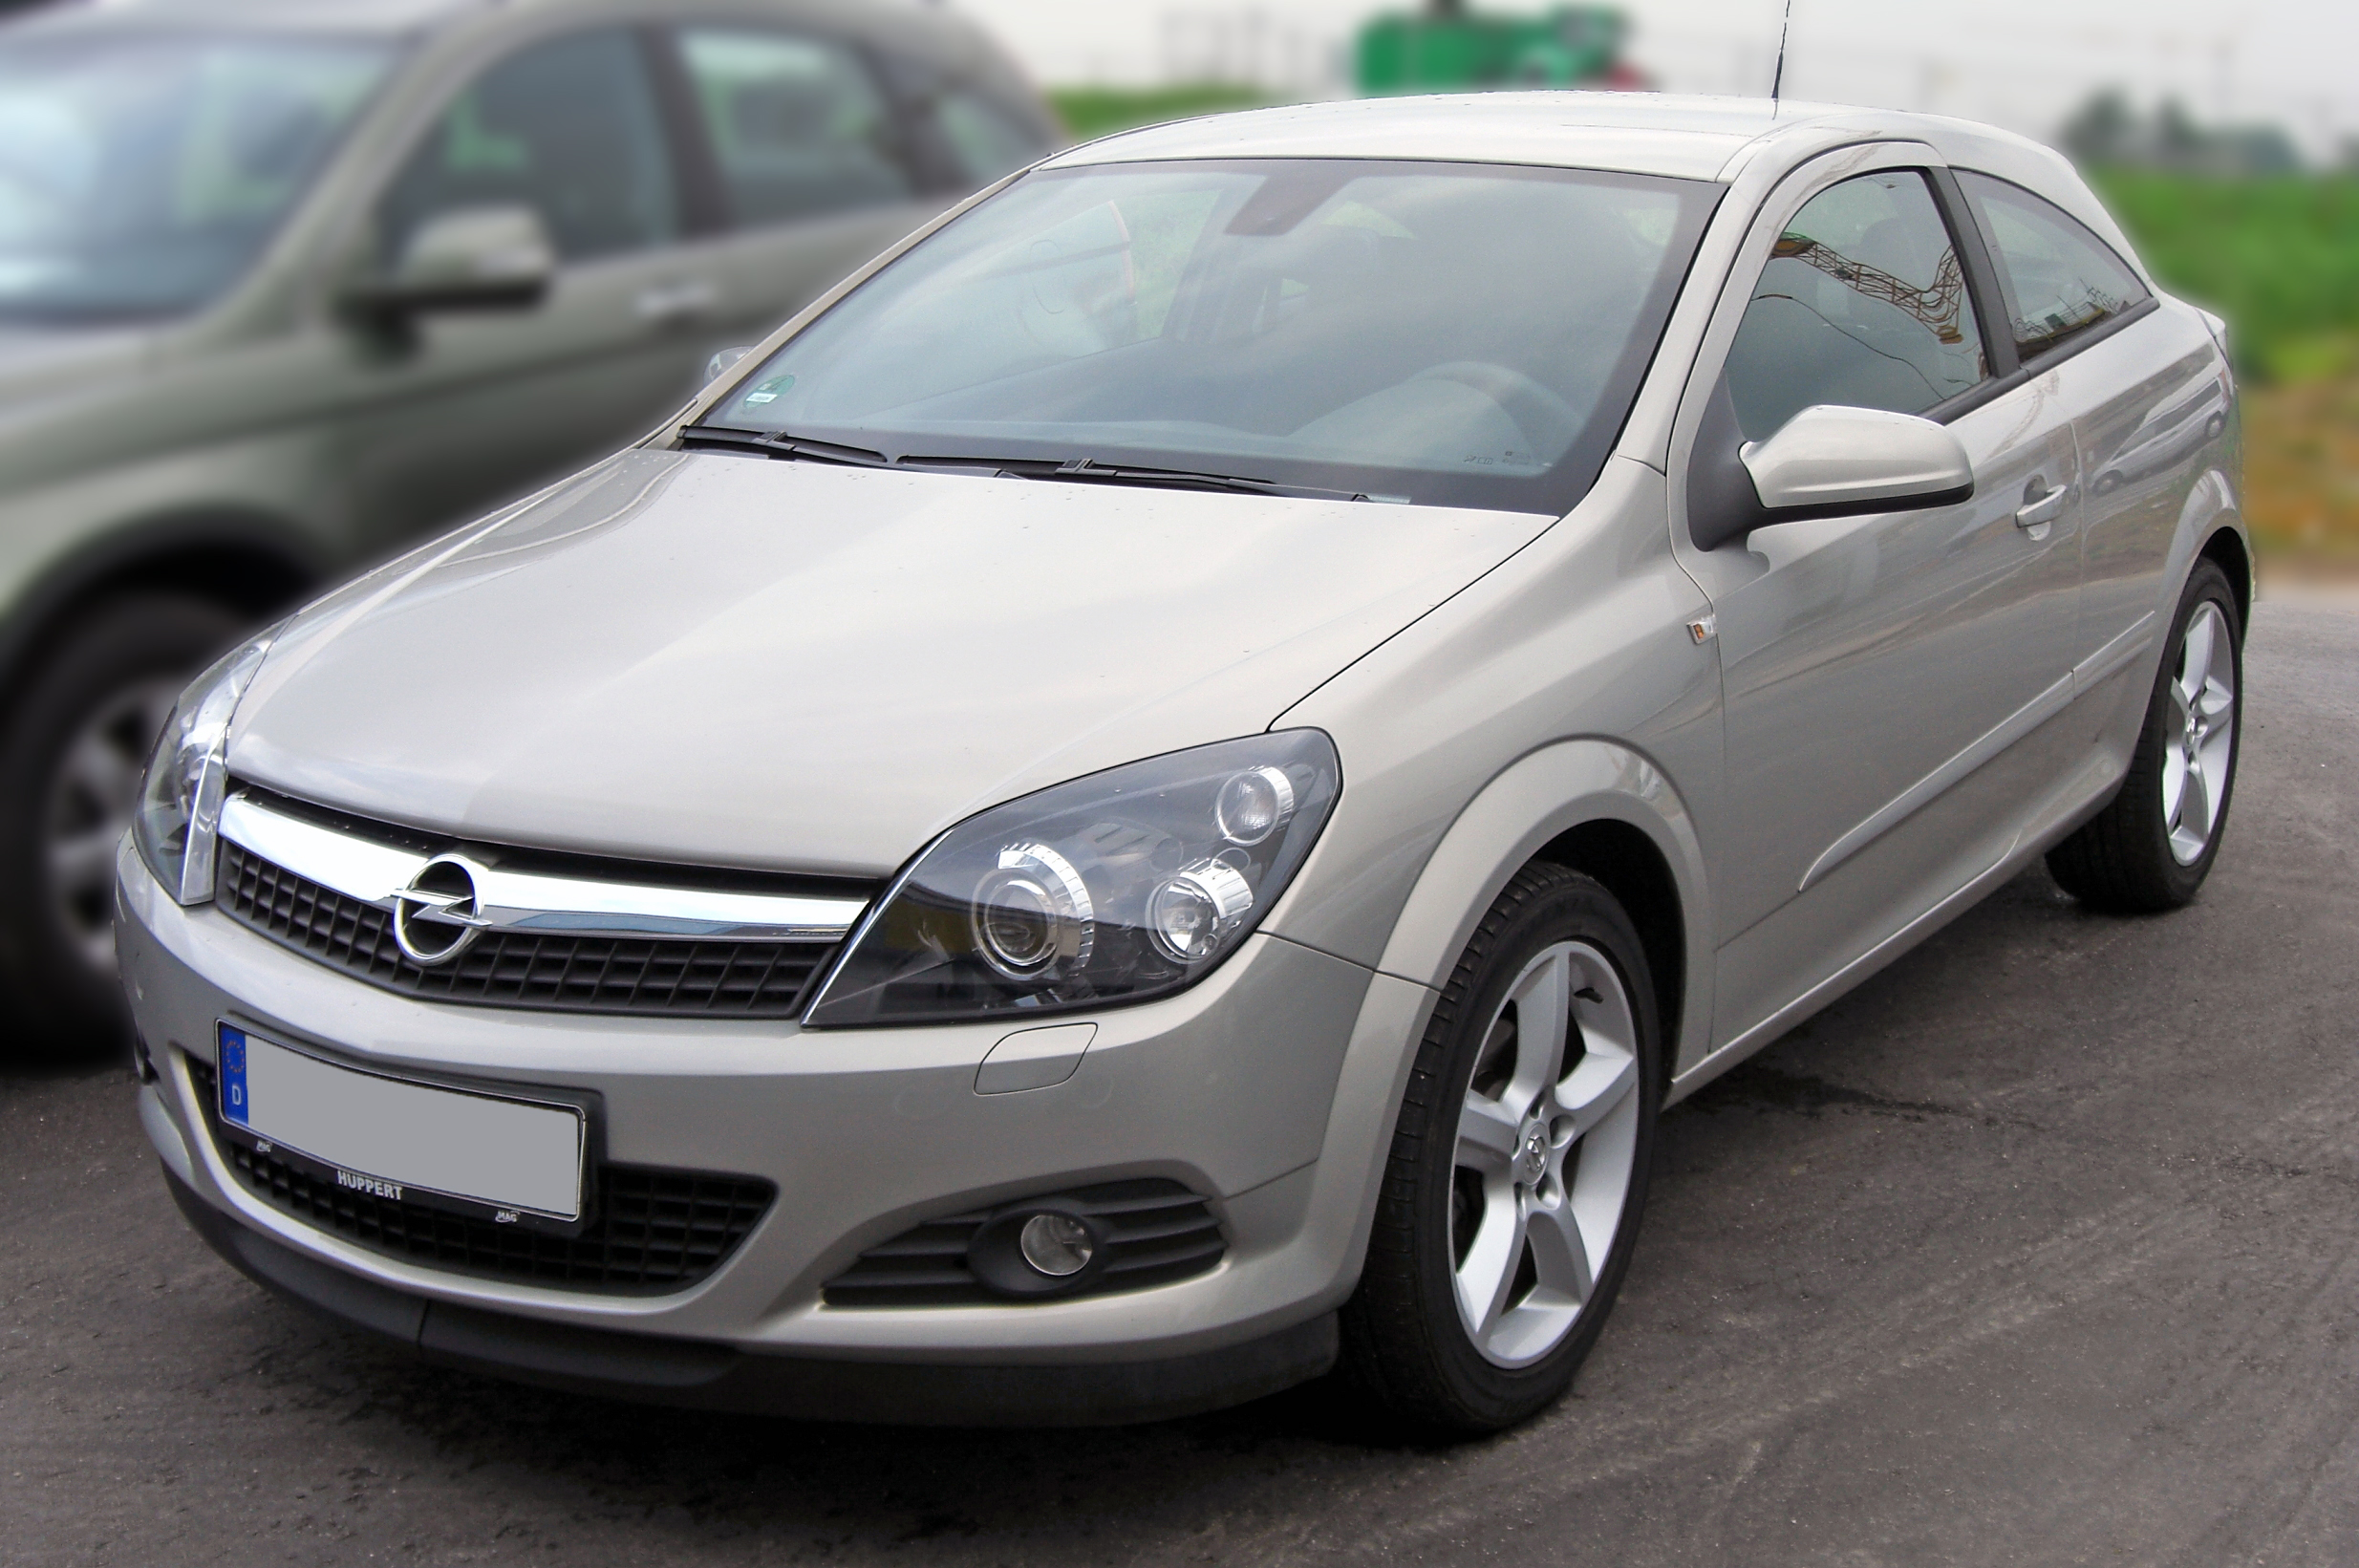 file opel astra h gtc facelift 20090507 wikimedia commons. Black Bedroom Furniture Sets. Home Design Ideas